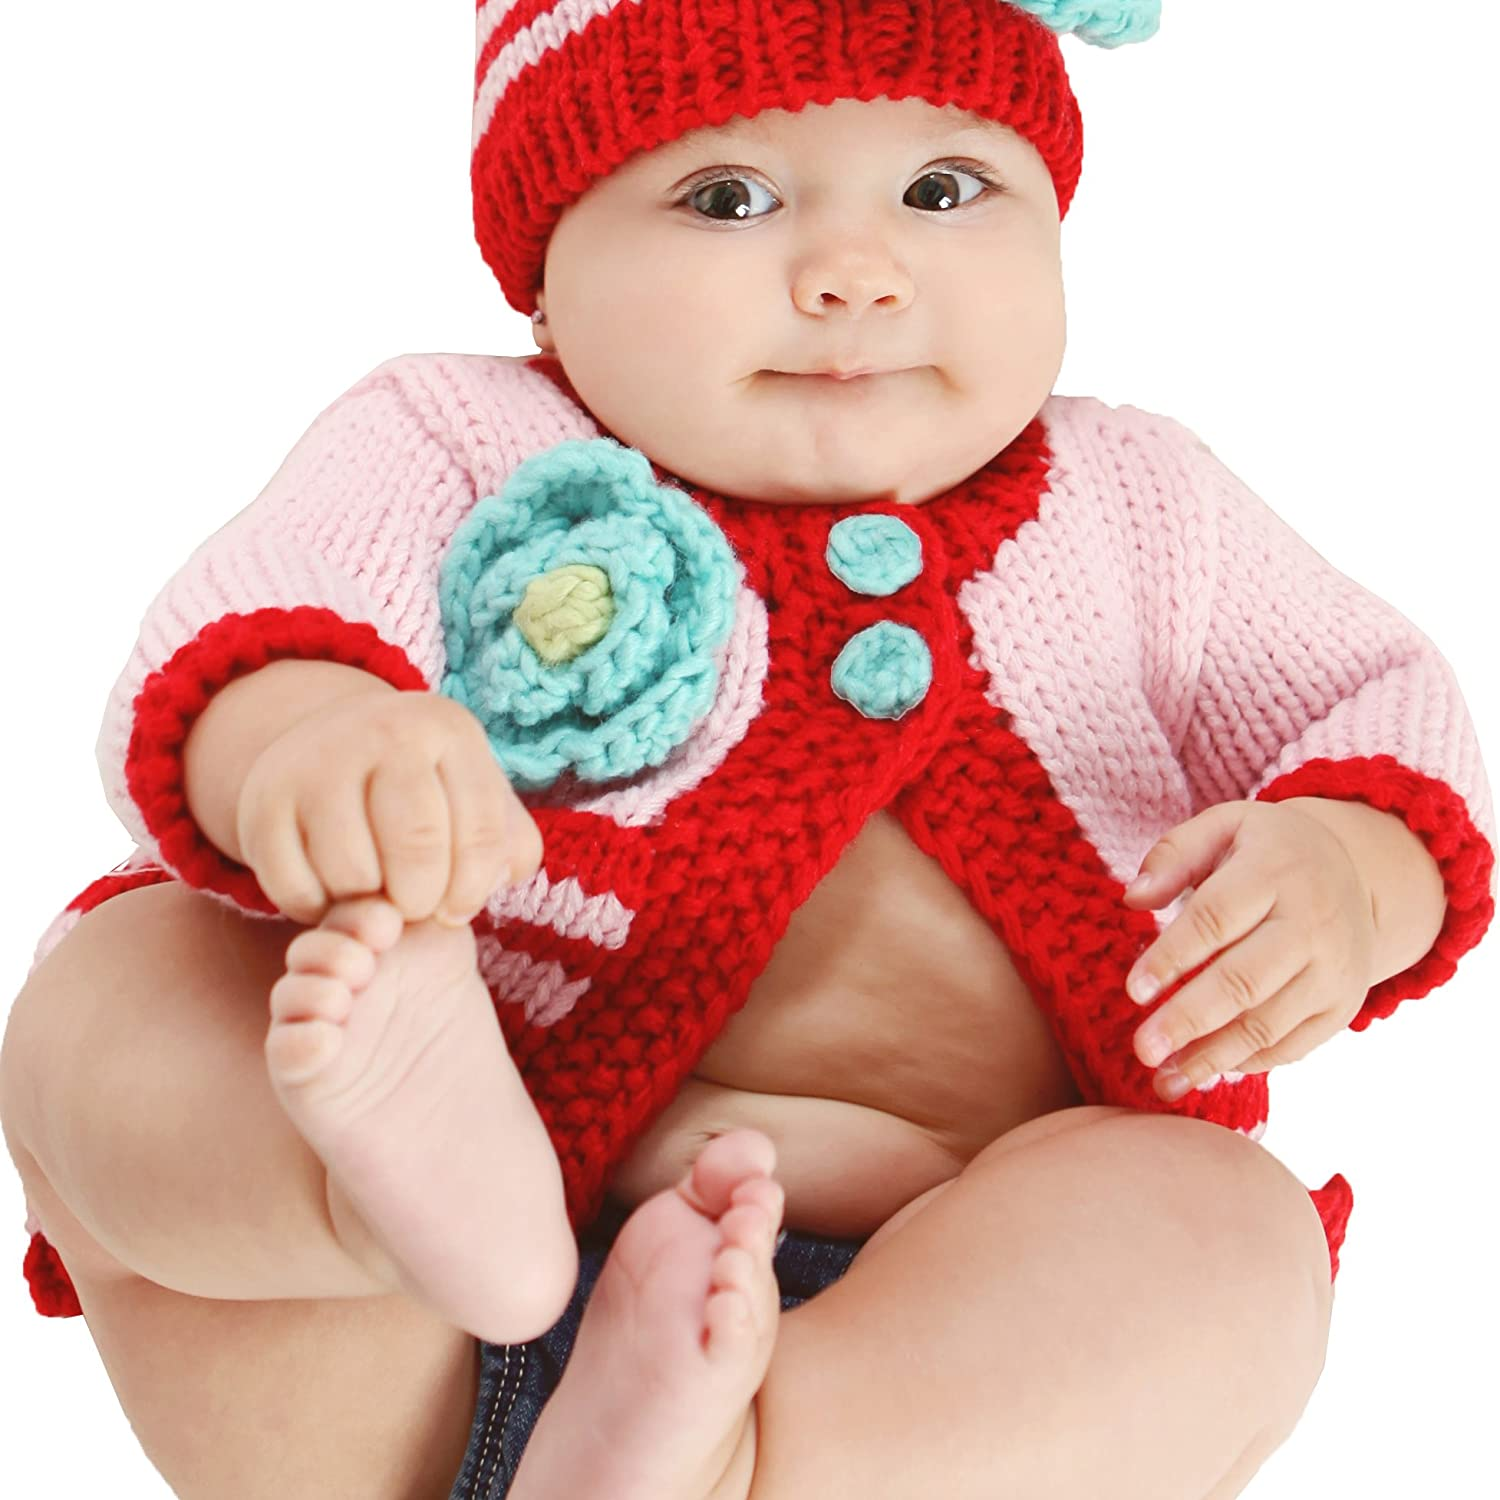 12-18 months, Festive Sweater Huggalugs Baby or Toddler Girls Cozy Striped Flower Sweater or Beanie Hat